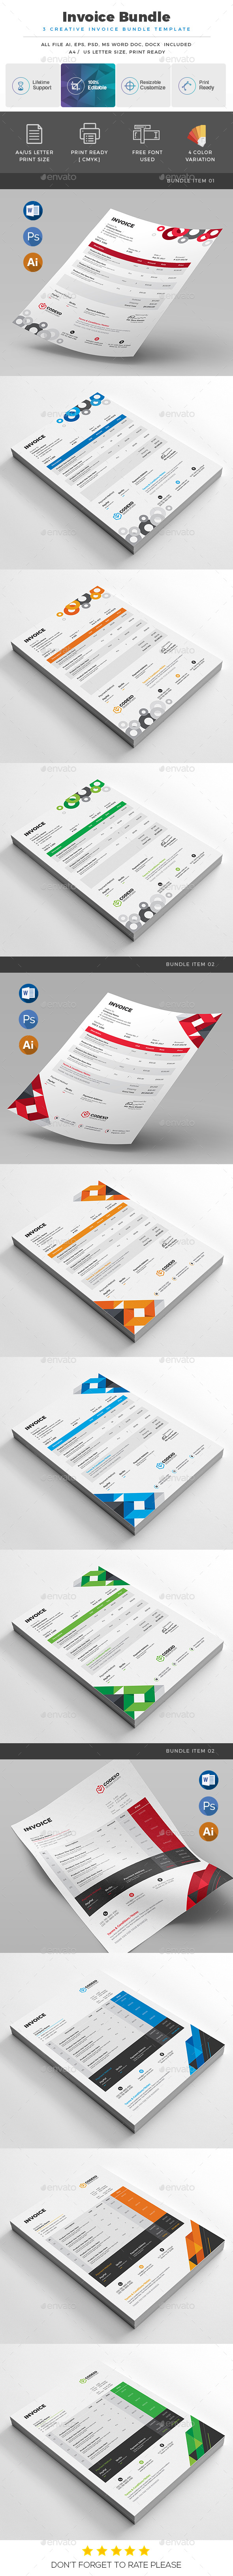 Invoice Bundle 3 in 1 - Stationery Print Templates